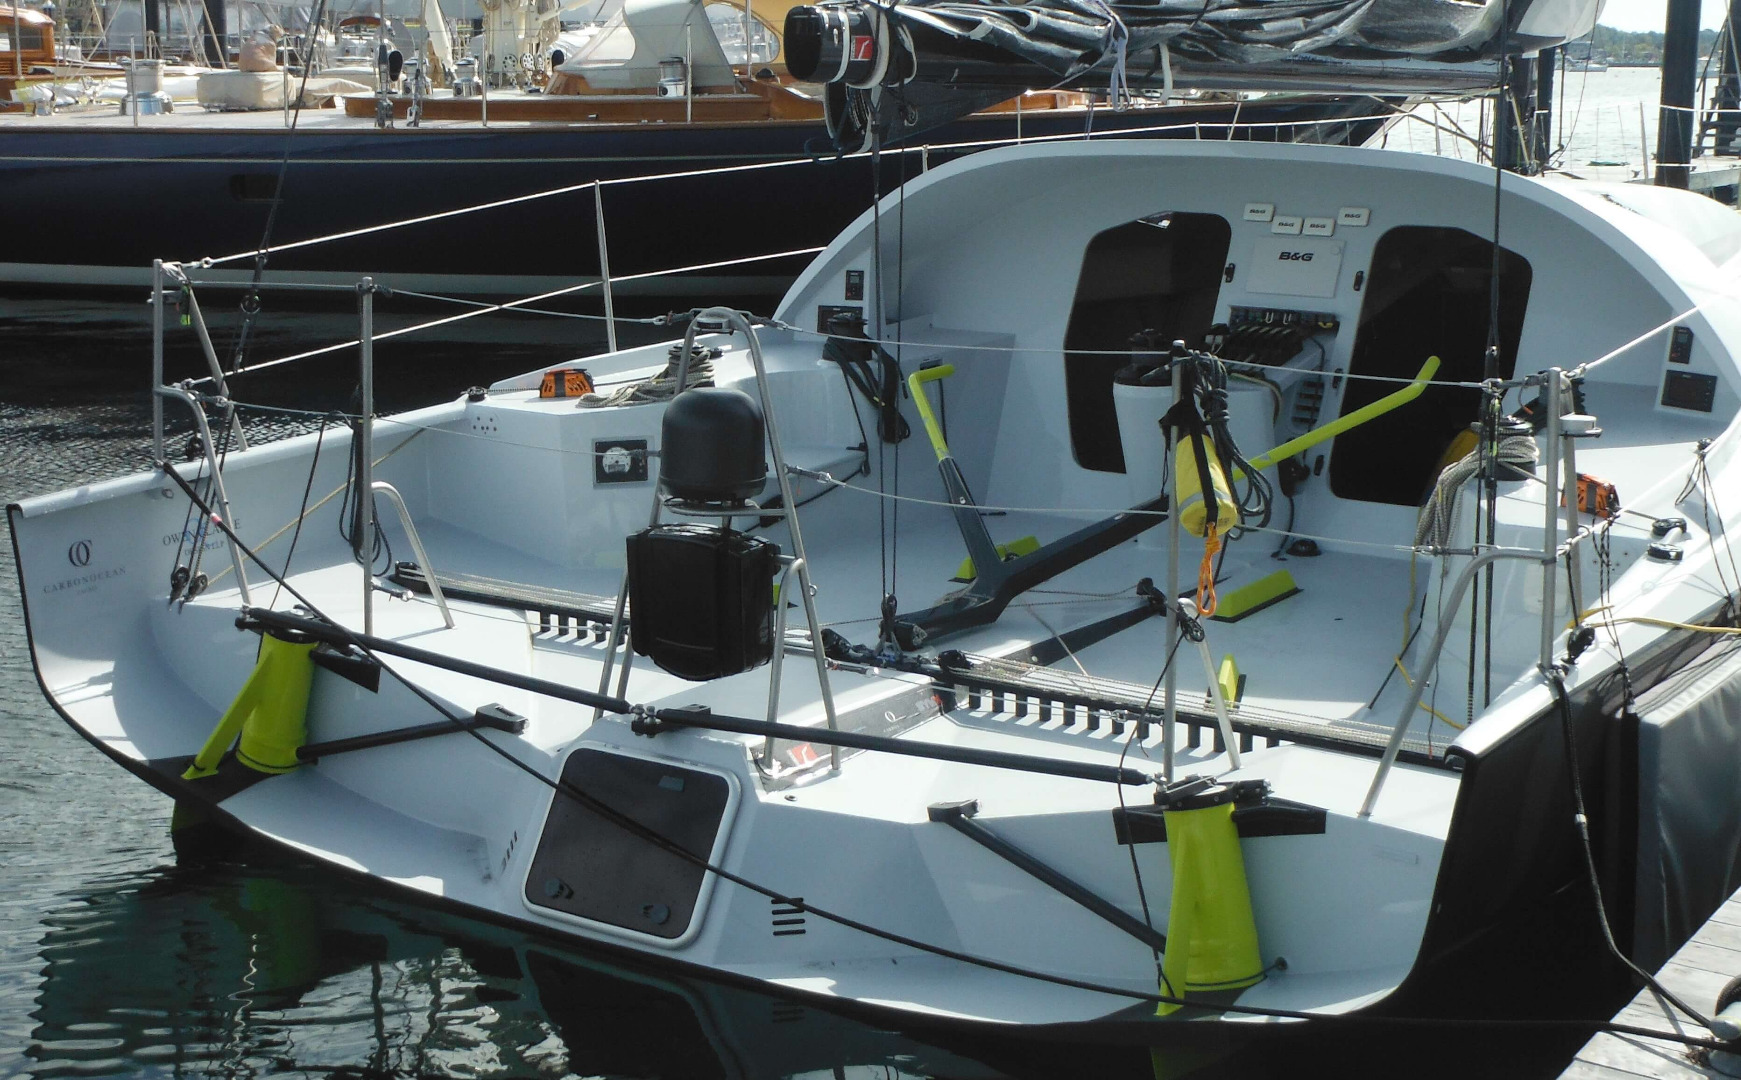 Owen Clarke designed No.143 Class 40 Open racing yacht was built in the USA, launched in 2015 and named Longbow